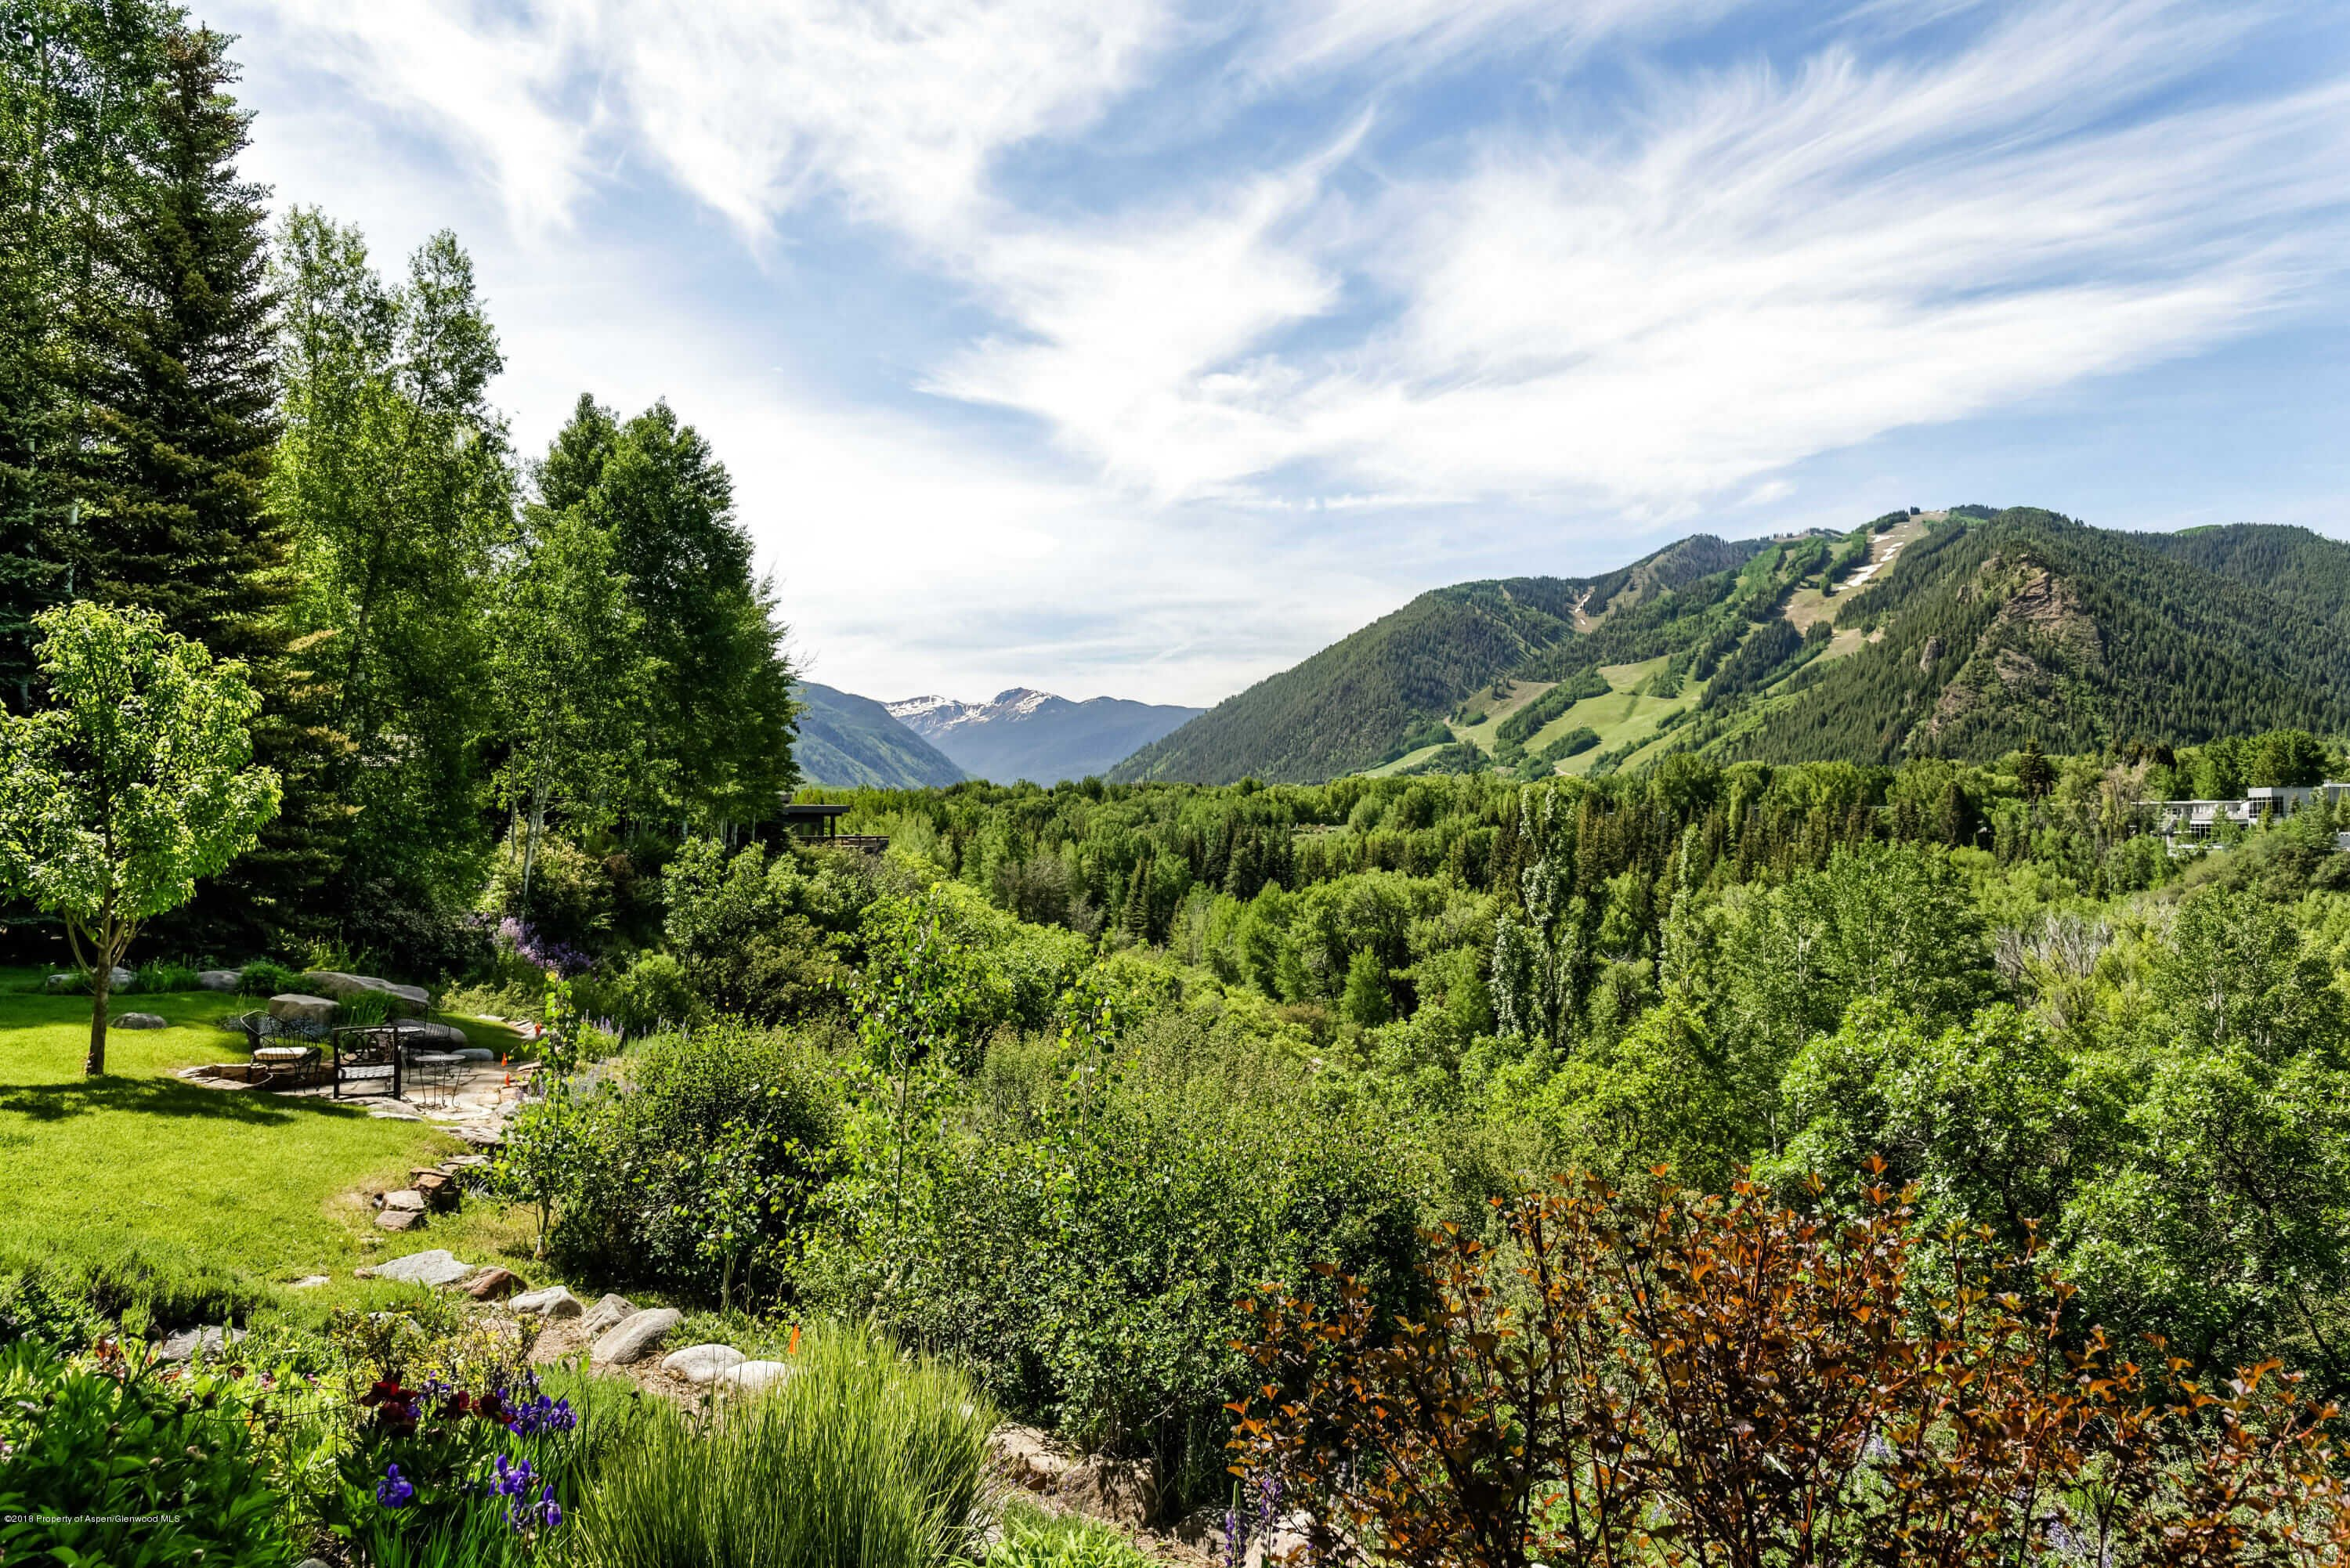 848 Willoughby Way Aspen CO: Instant Flip – Before $12.1M Closed; After $15.99M Ask for Sale Thumbnail